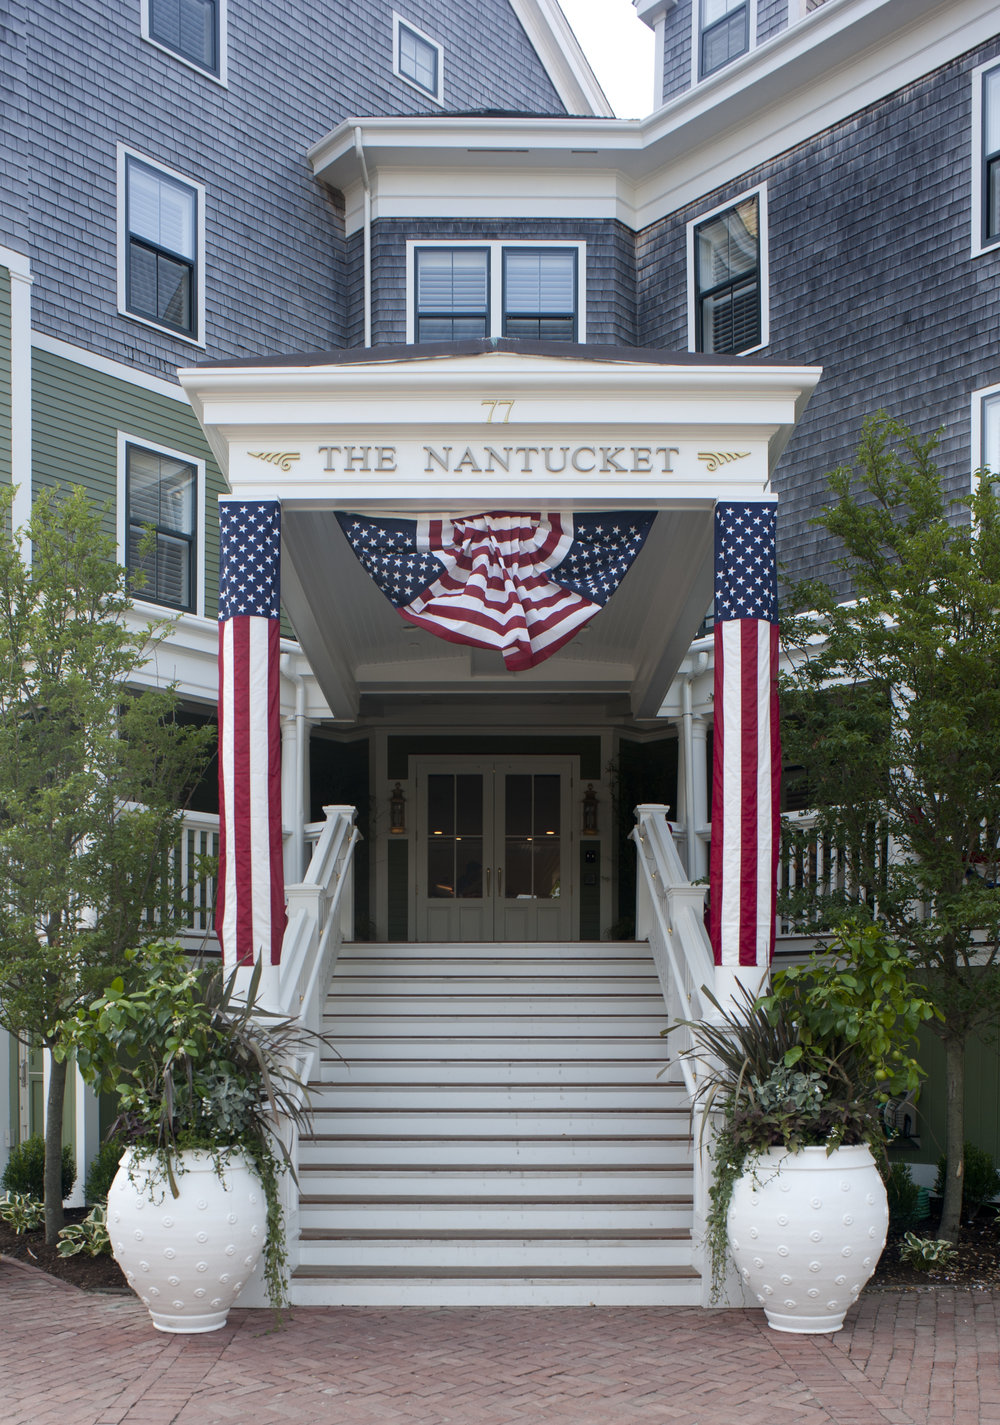 Entrance to the Nantucket Resort on the island of Nantucket, MA - Photo Via Nantucket Resort